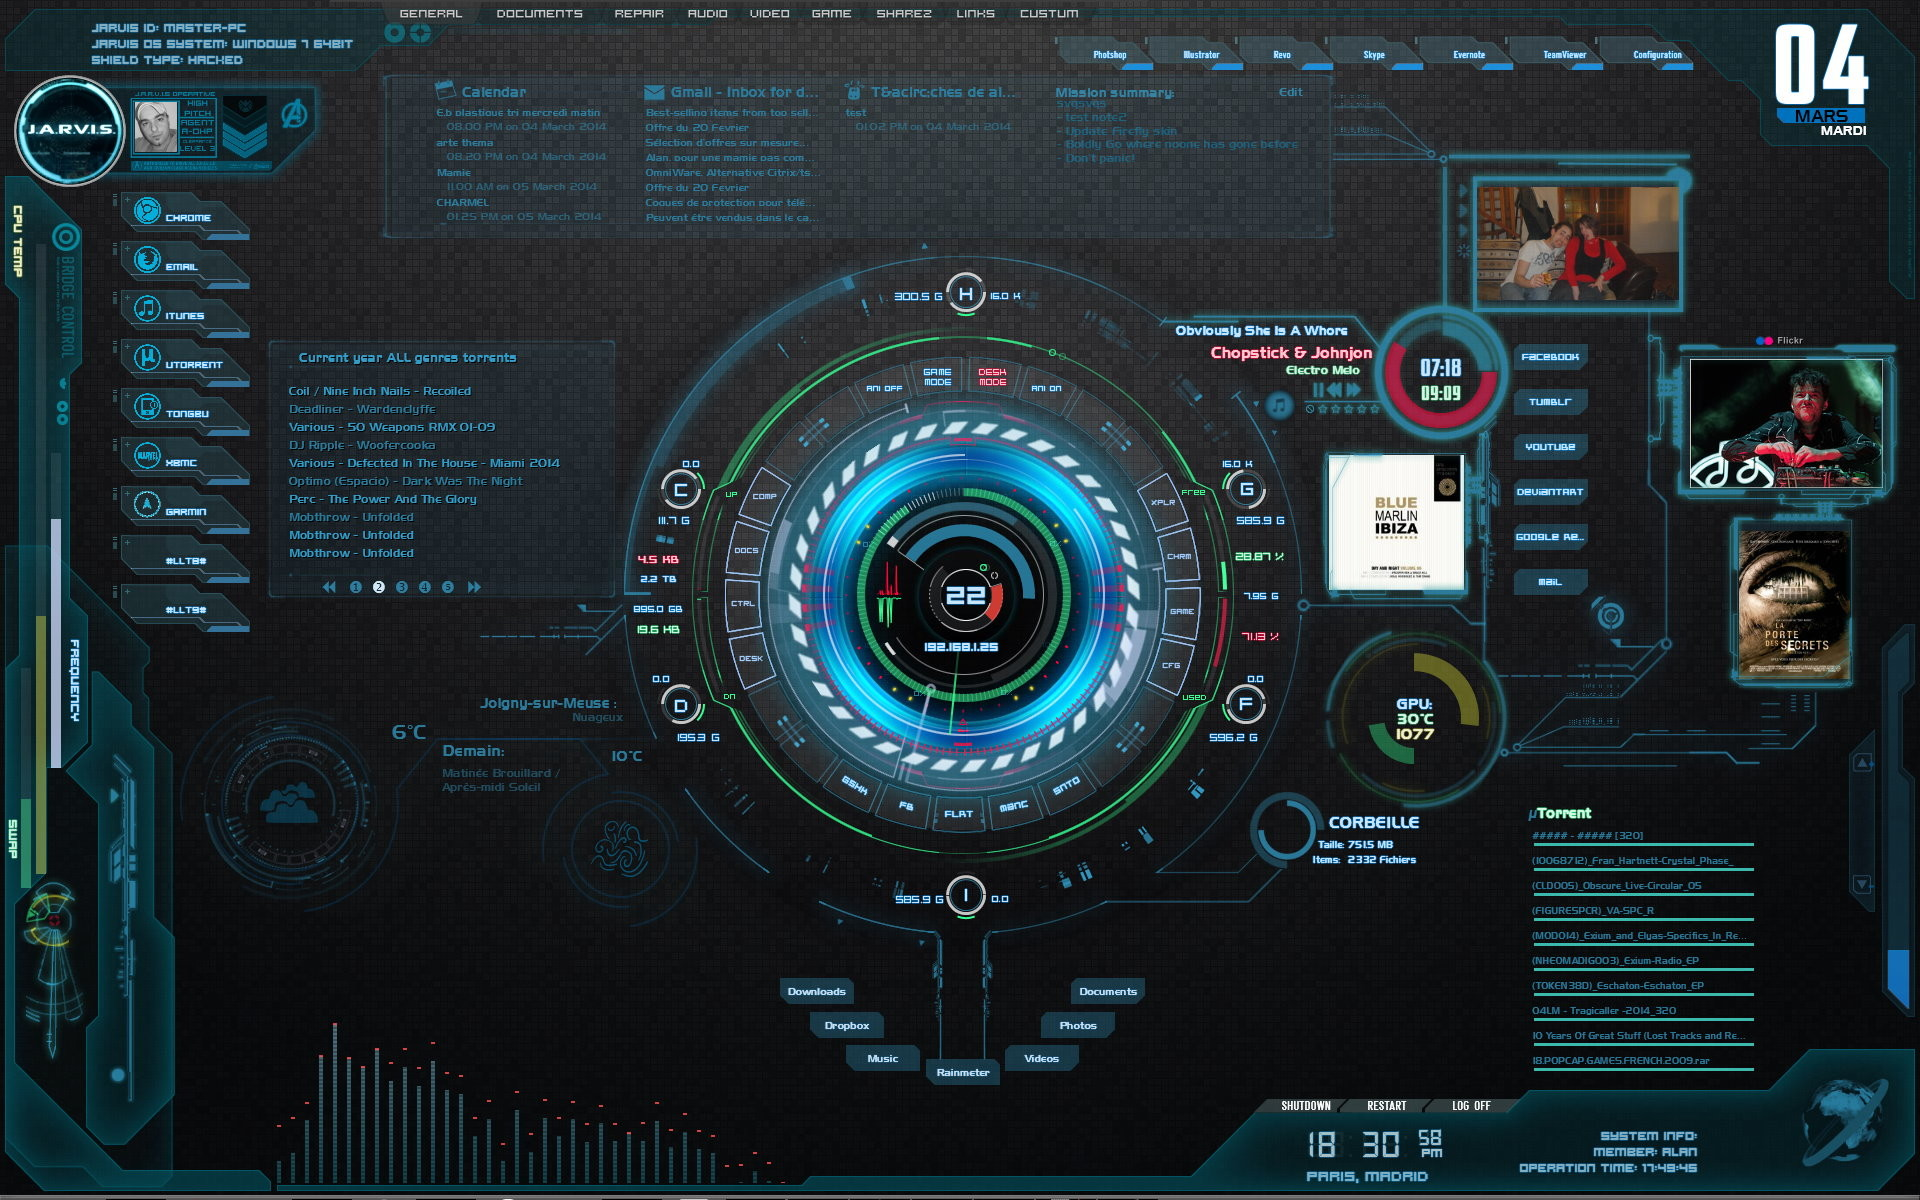 Jarvis iron man wallpaper hd 74 images for Deviantart rainmeter